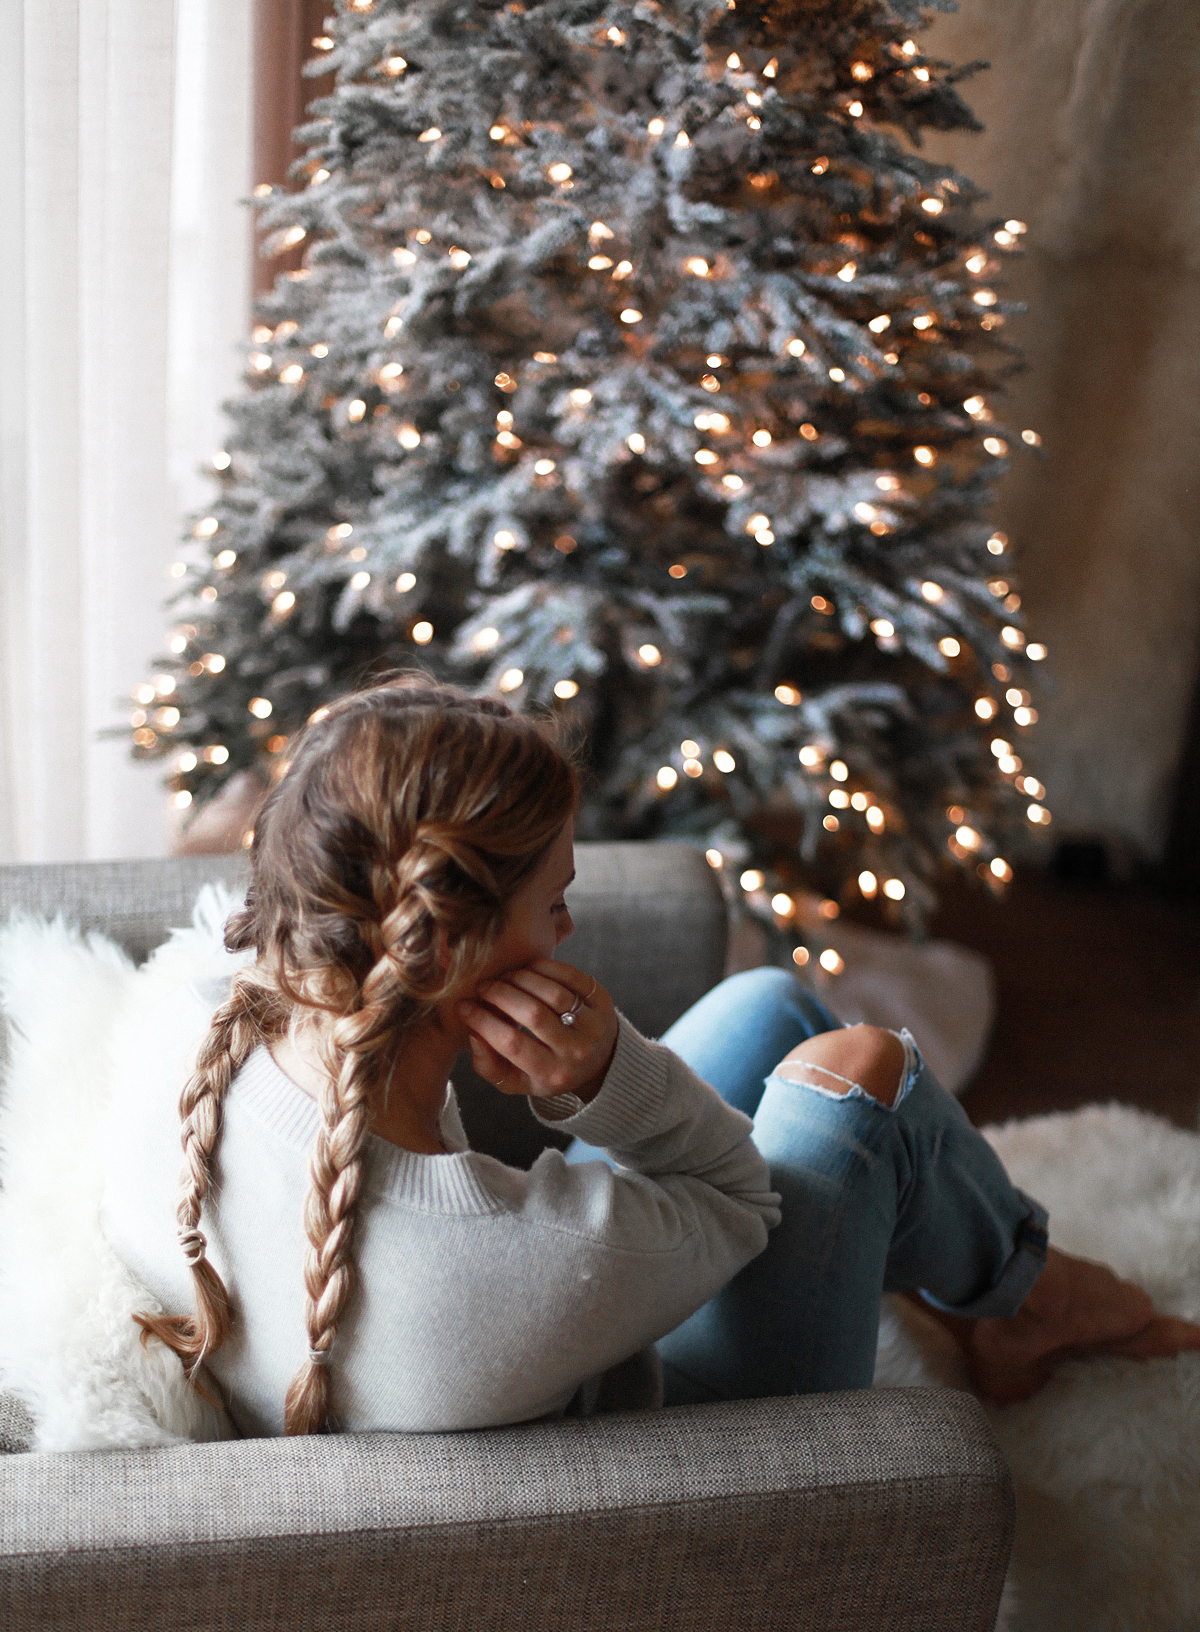 Lifestyle blogger Lisa Hamilton from See Want Shop with her Christmas tree wearing denim jeans, braided hair & knit sweater